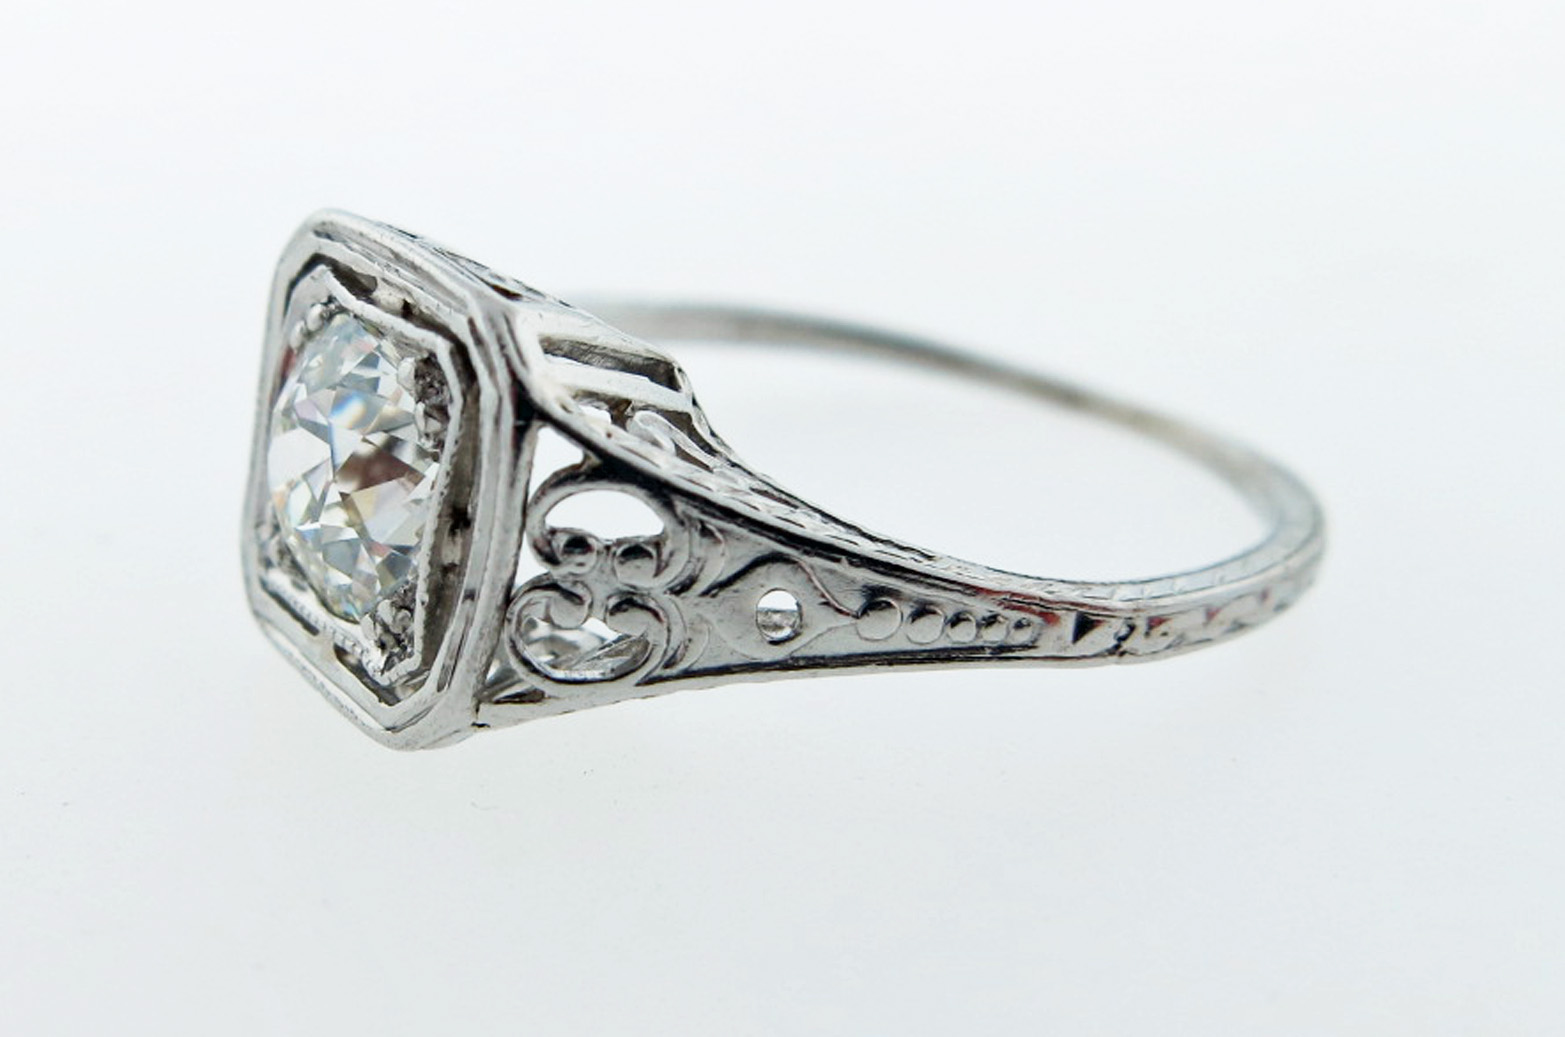 Park Place Antique Jewelry - Engagement Rings & Wedding Bands